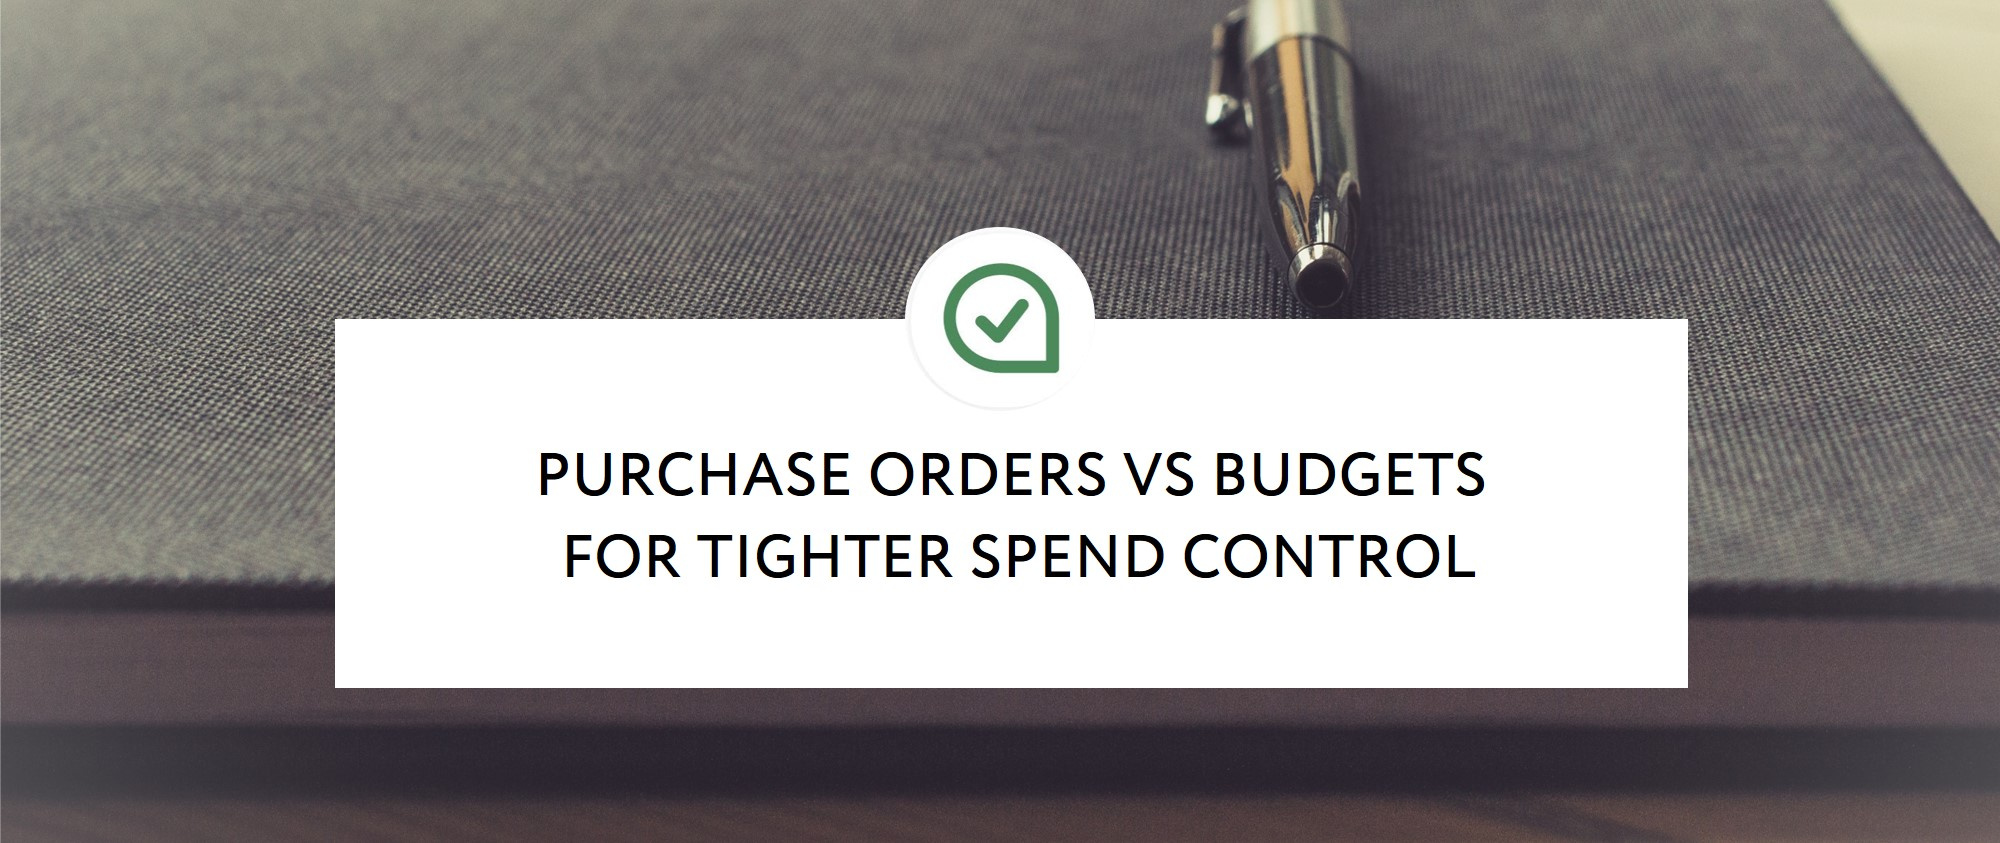 PURCHASE ORDERS VS BUDGETS FOR TIGHTER SPEND CONTROL